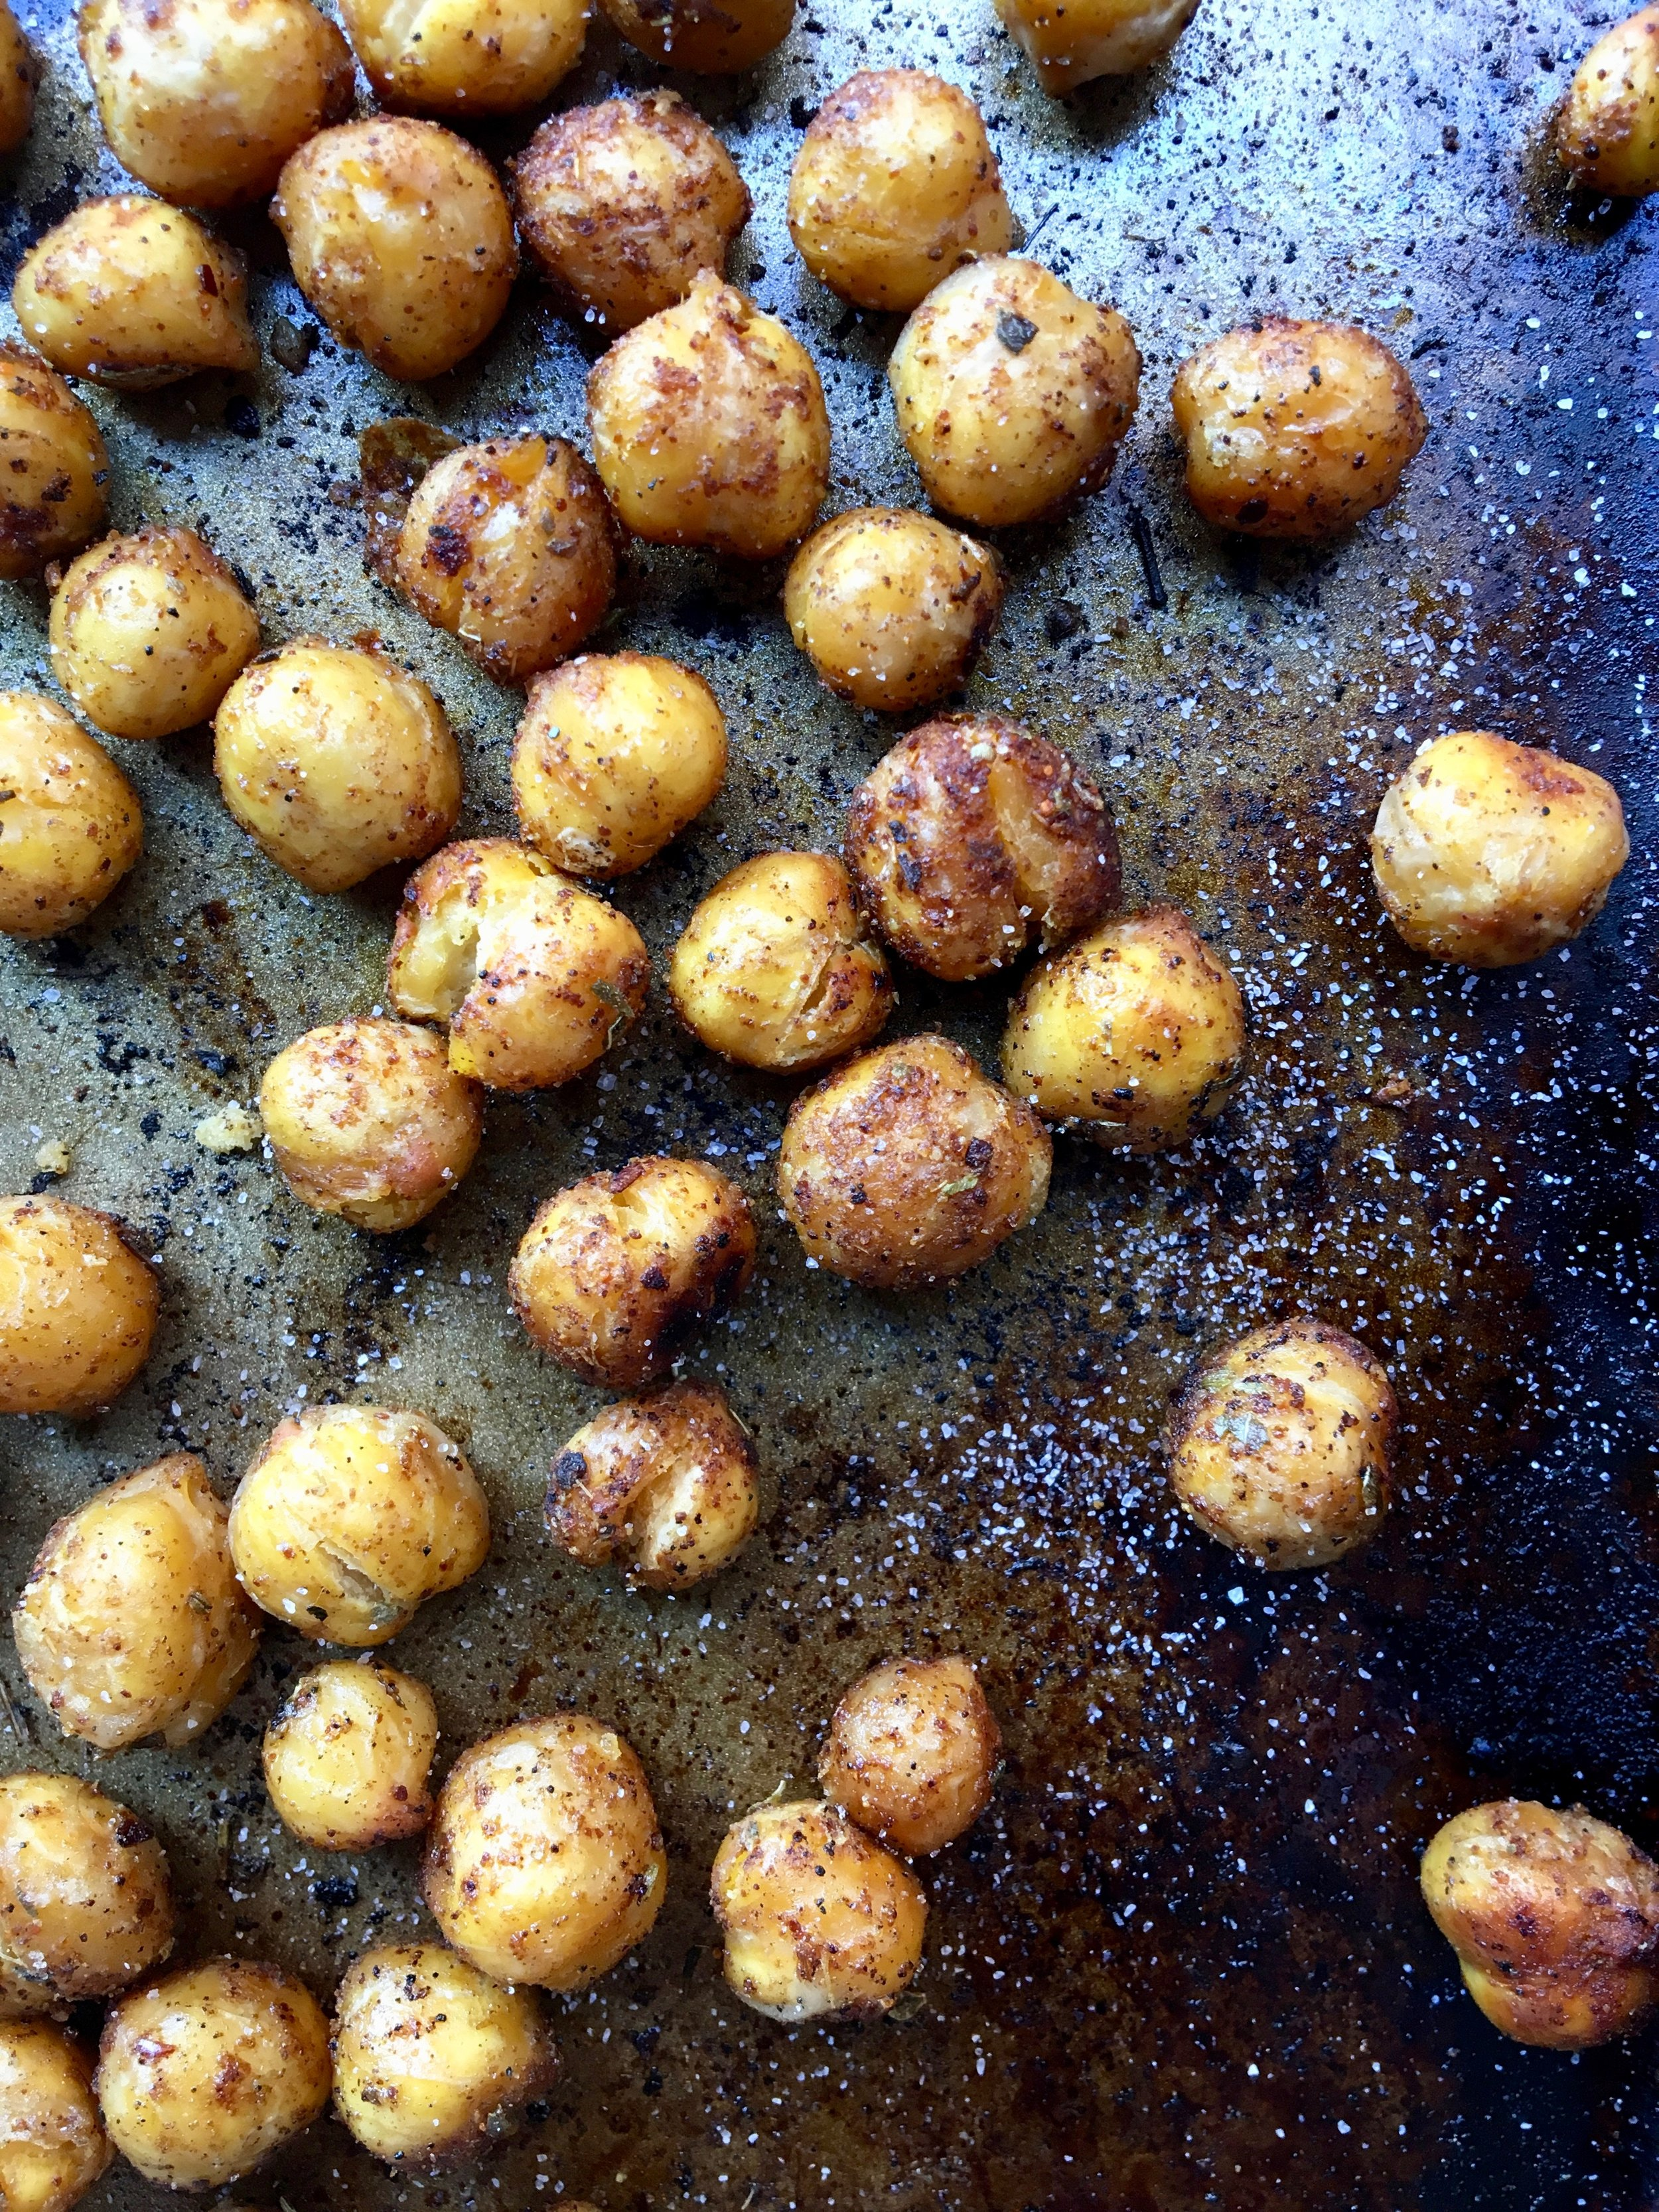 Roasted Chickpeas (ceci / garbanzos)